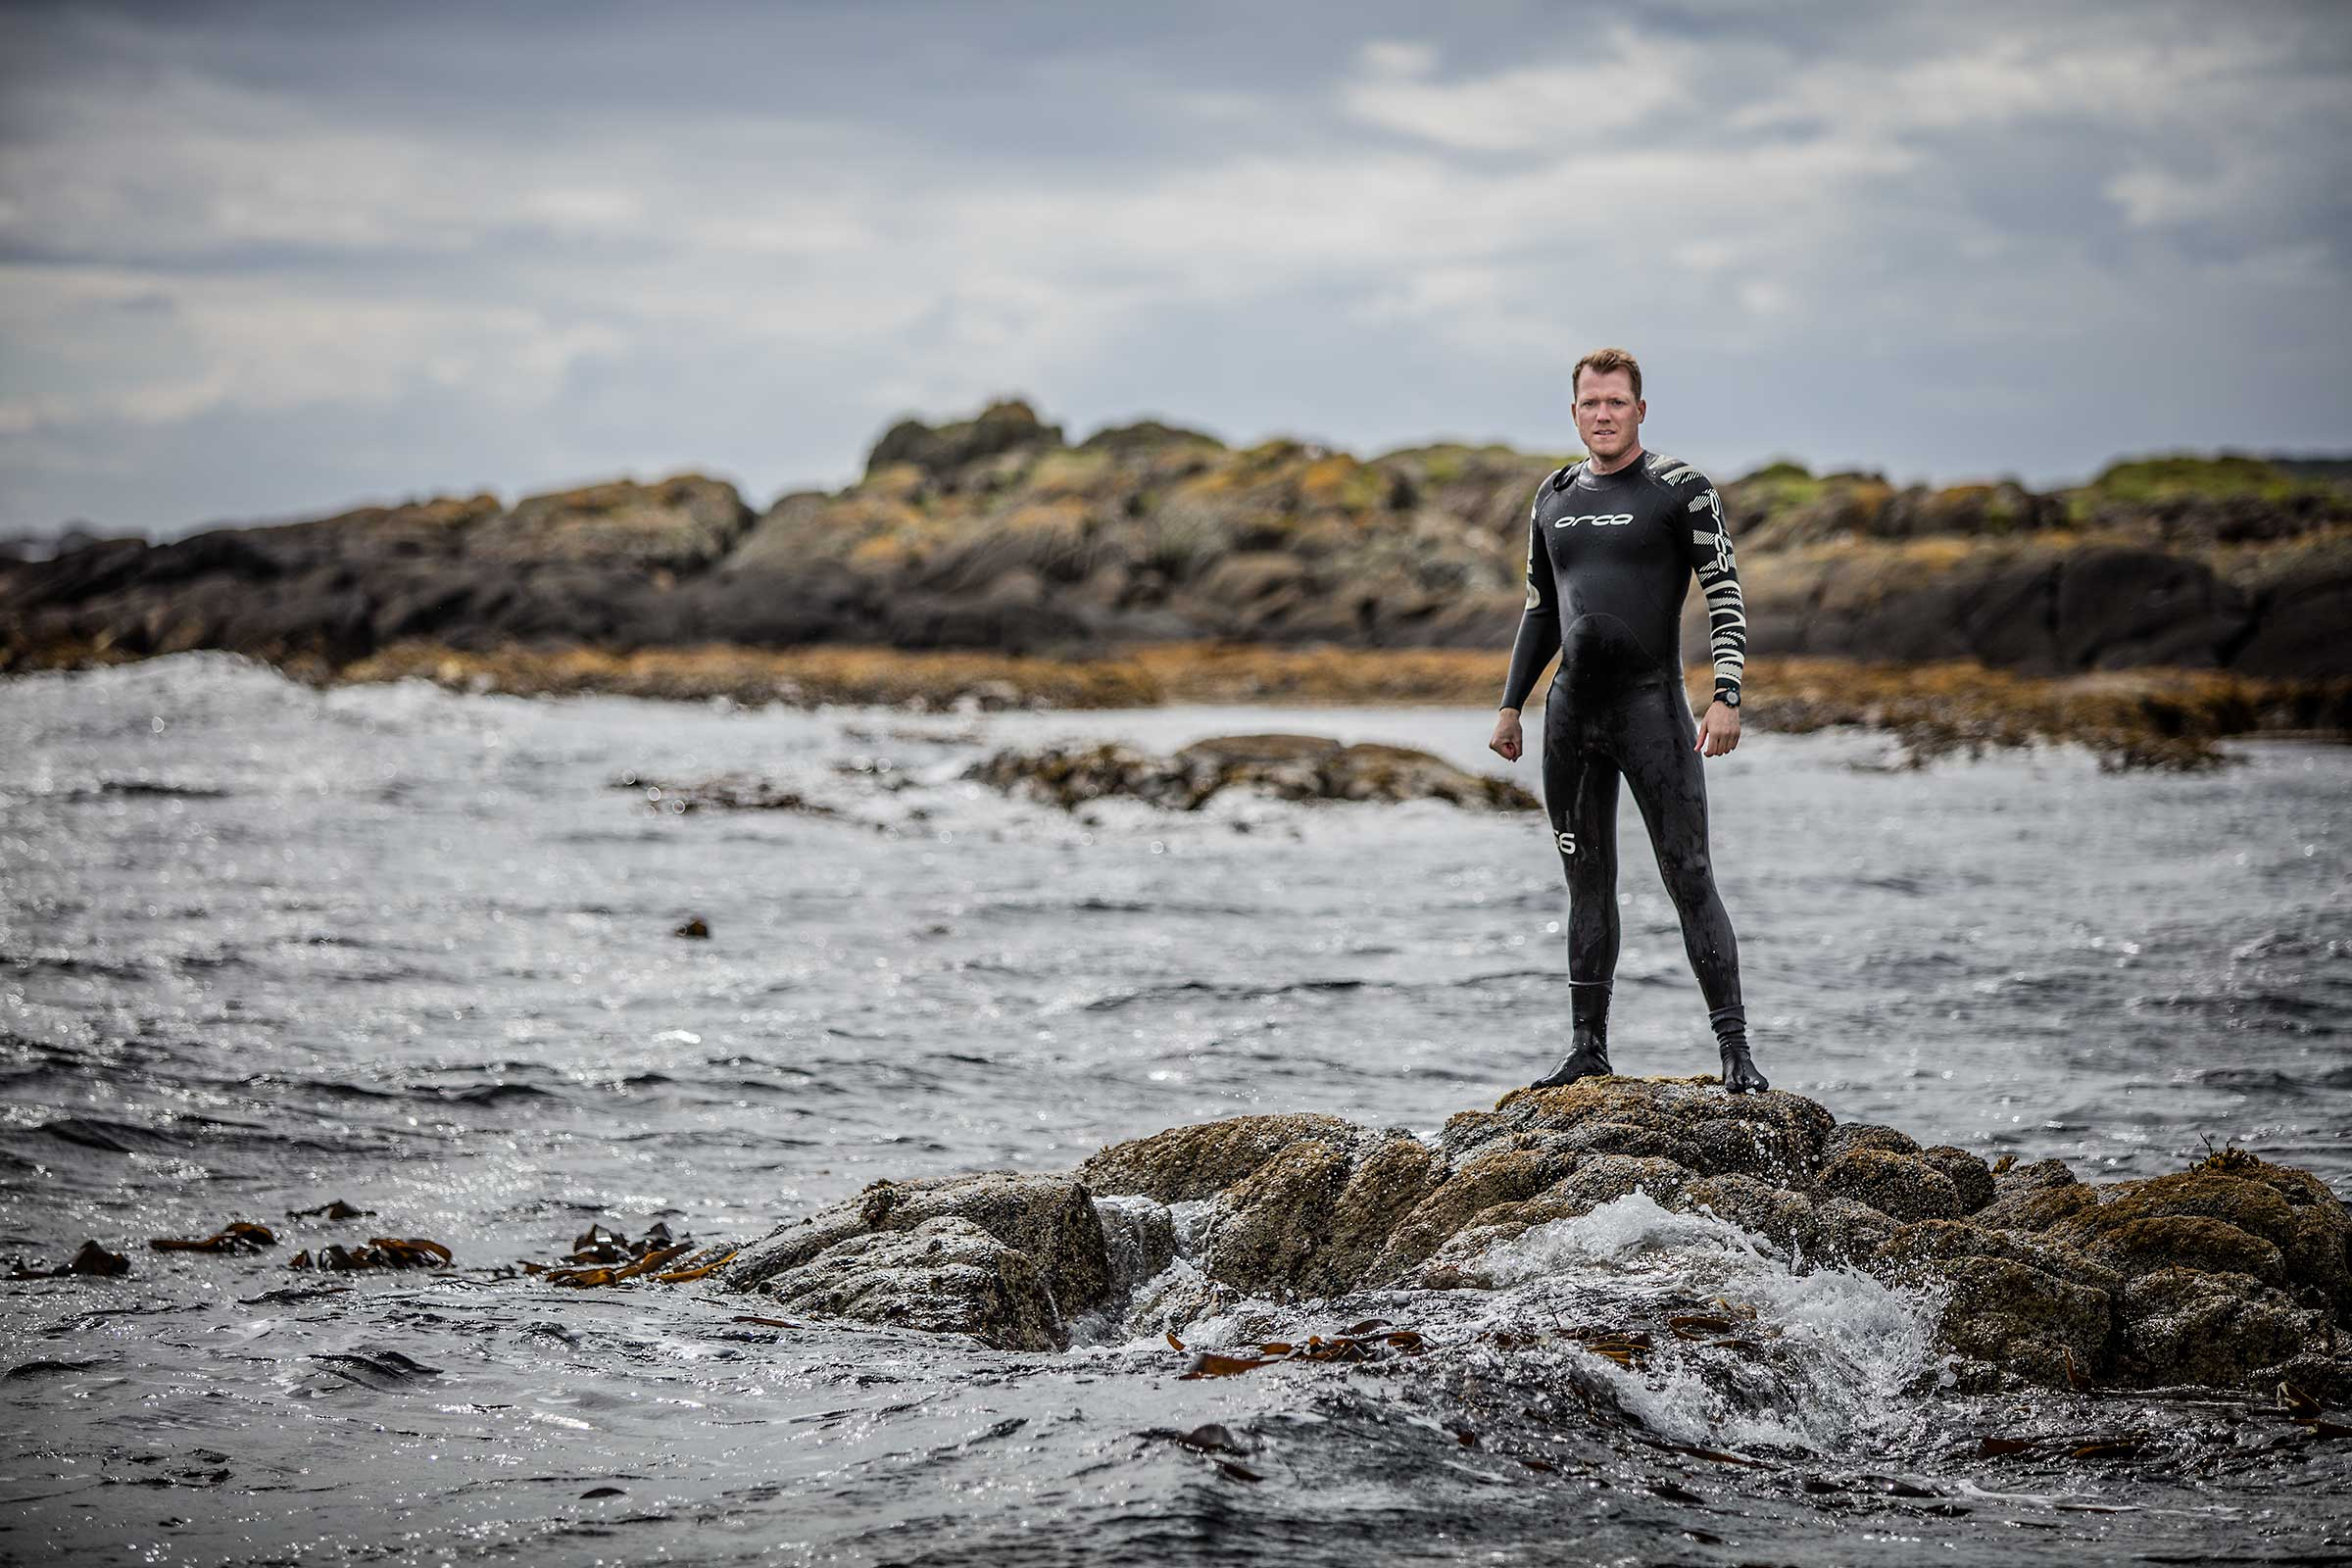 dramatic portrait of long distance open water swimmer on rocks among ocean waves